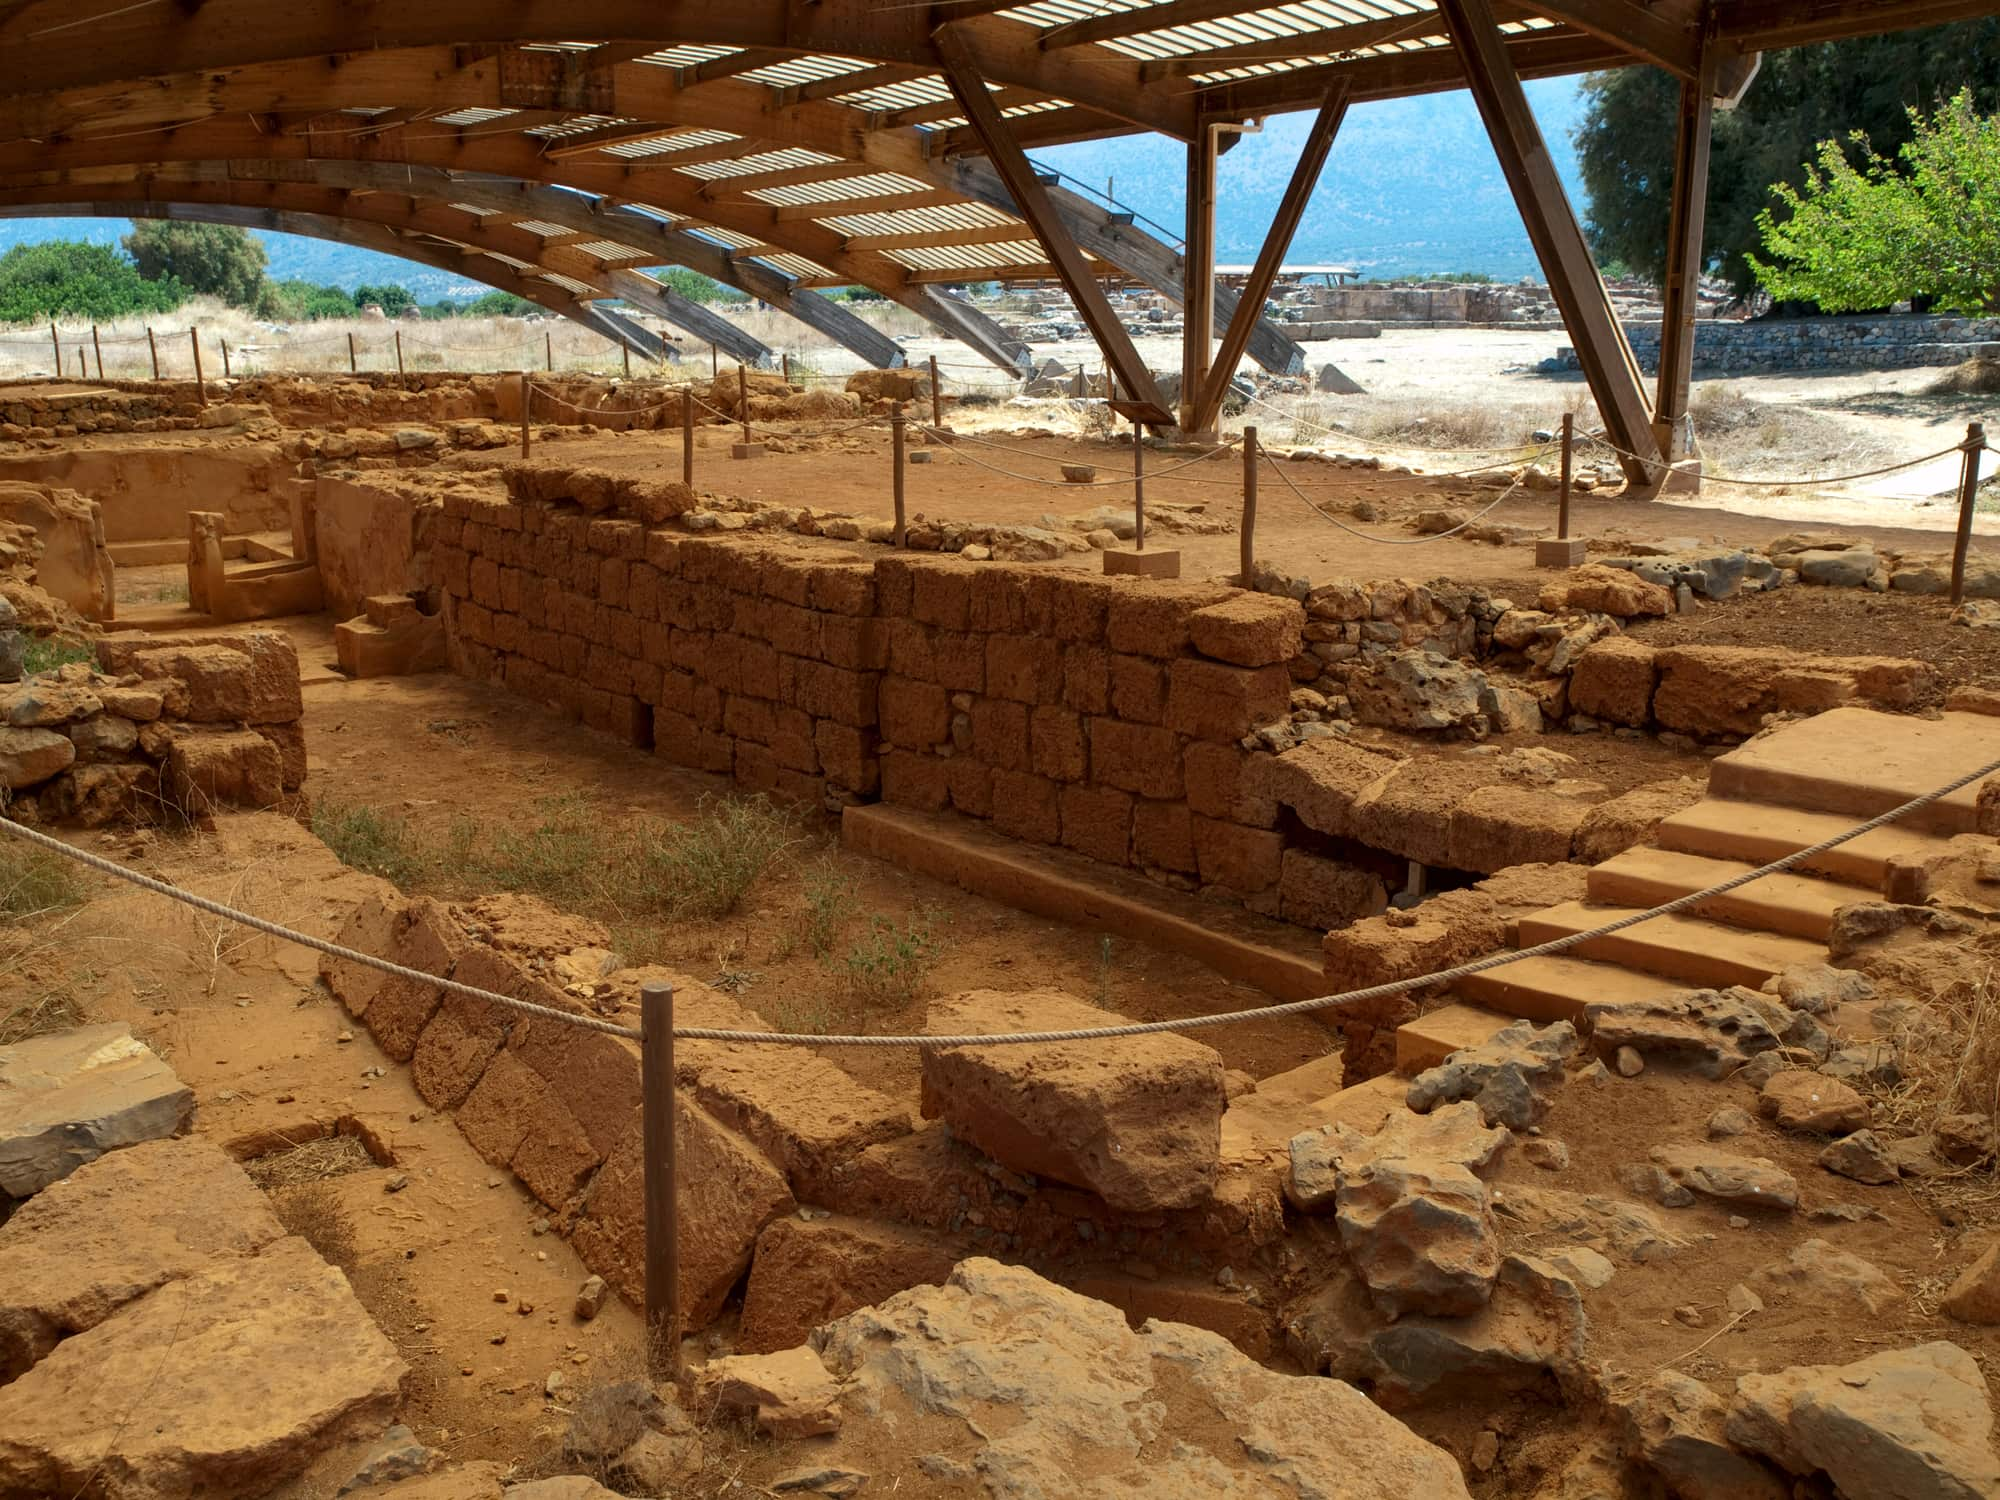 Ruins of Ancient Malia Palace